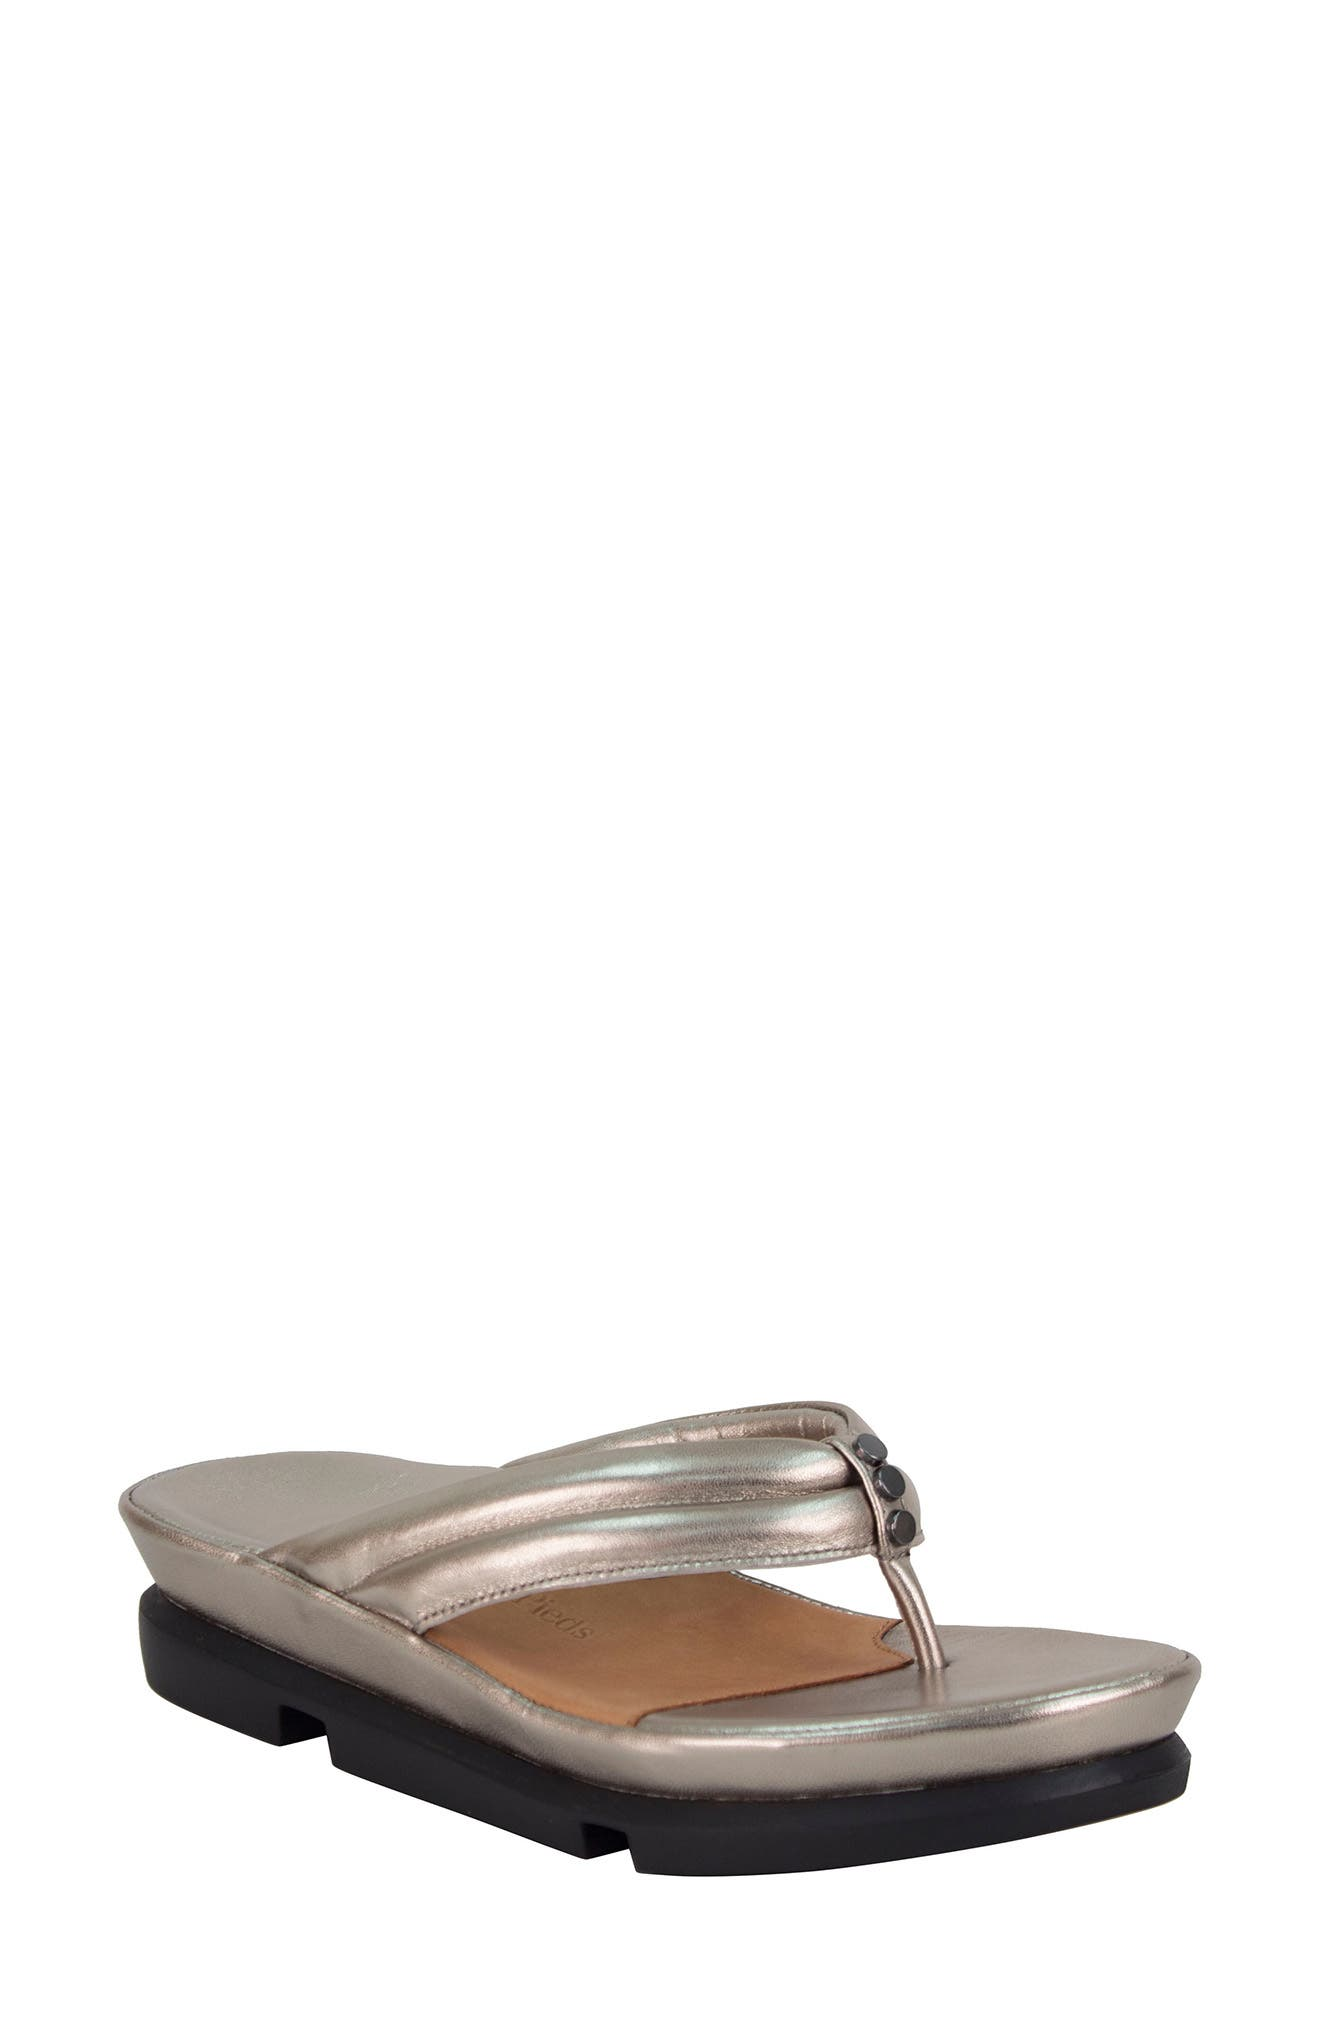 L'AMOUR DES PIEDS Villapapavero Flip Flop, Main, color, PEWTER LEATHER